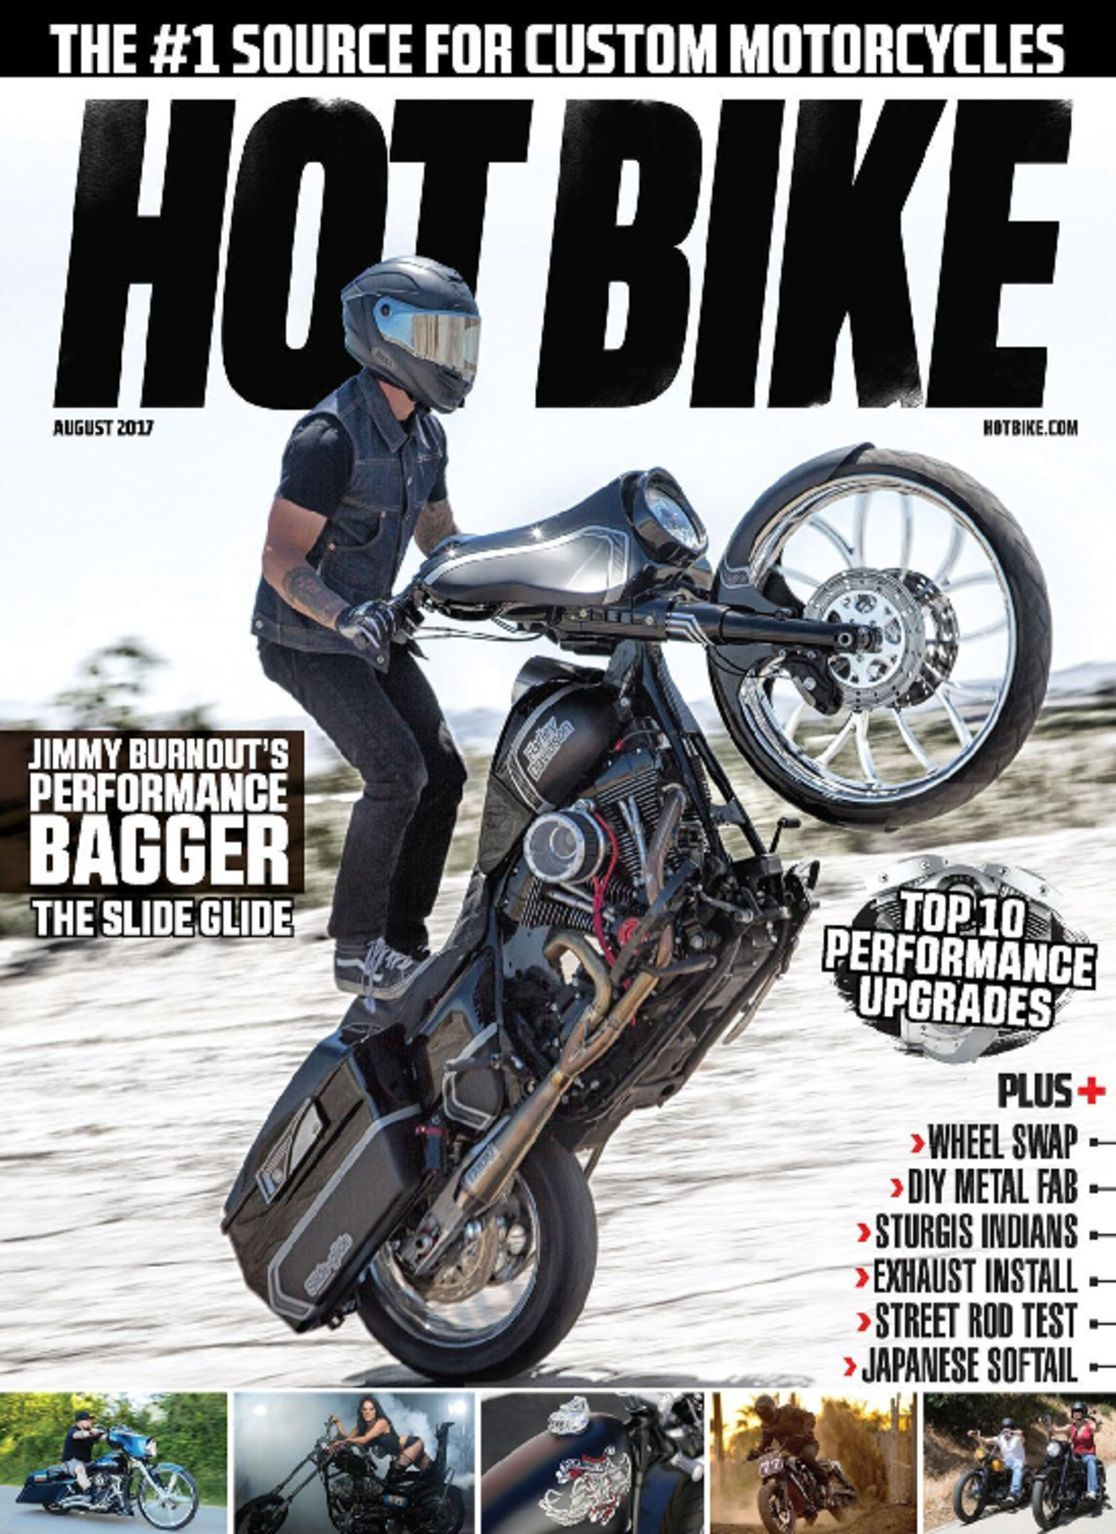 bike issue magazine august harley copy motorcycle custom discountmags pdf